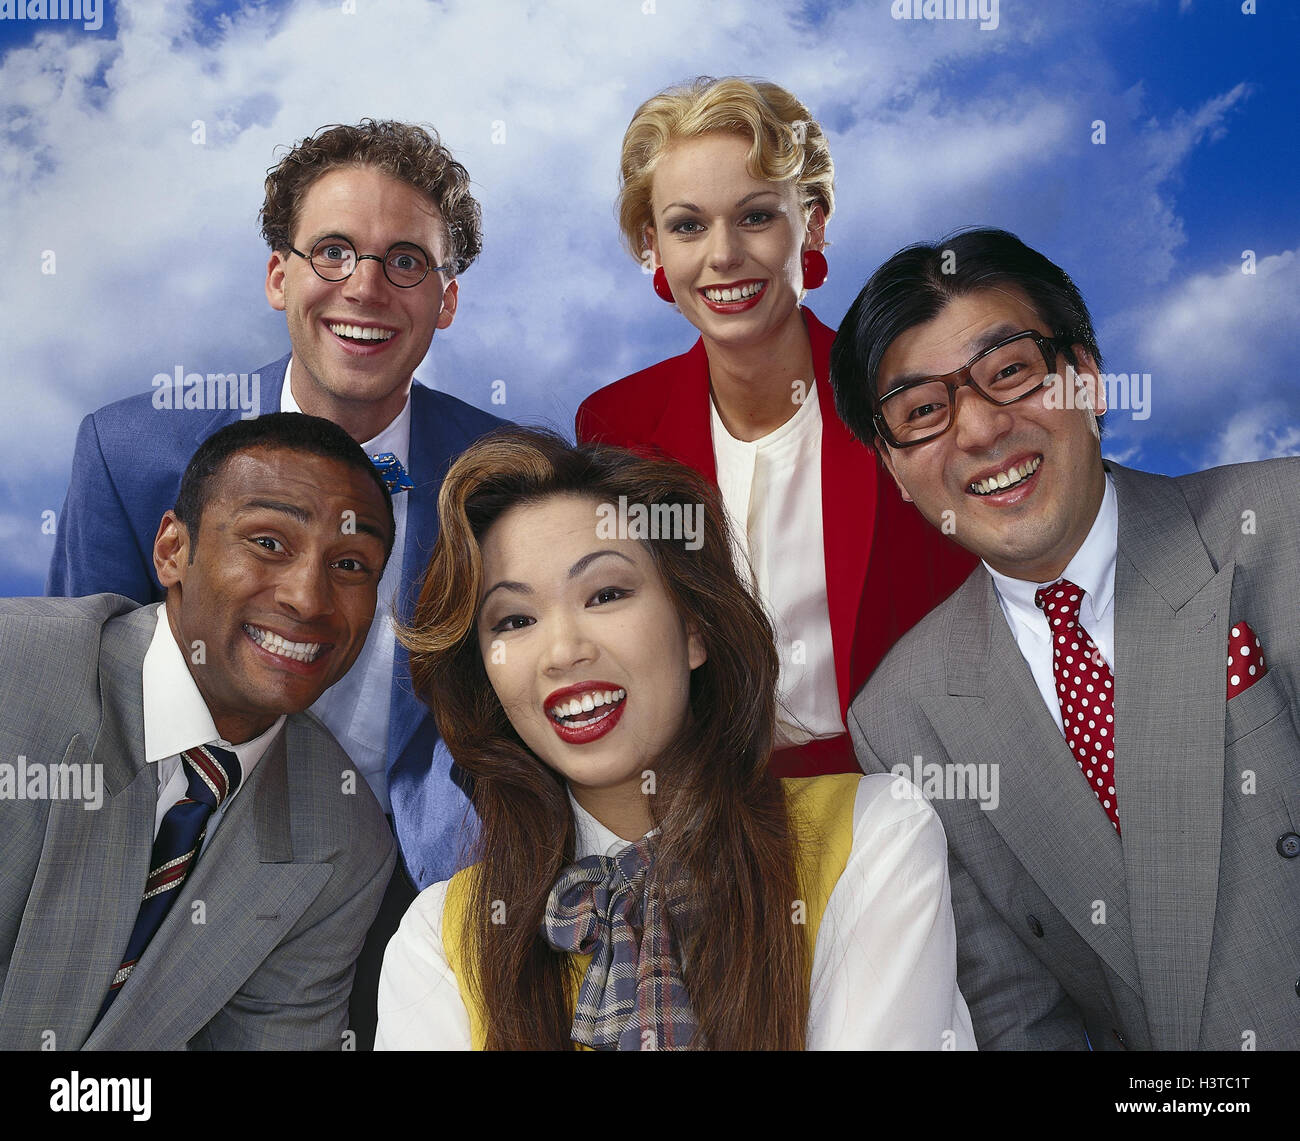 Business people, different nationality mb 160 A5 - Stock Image